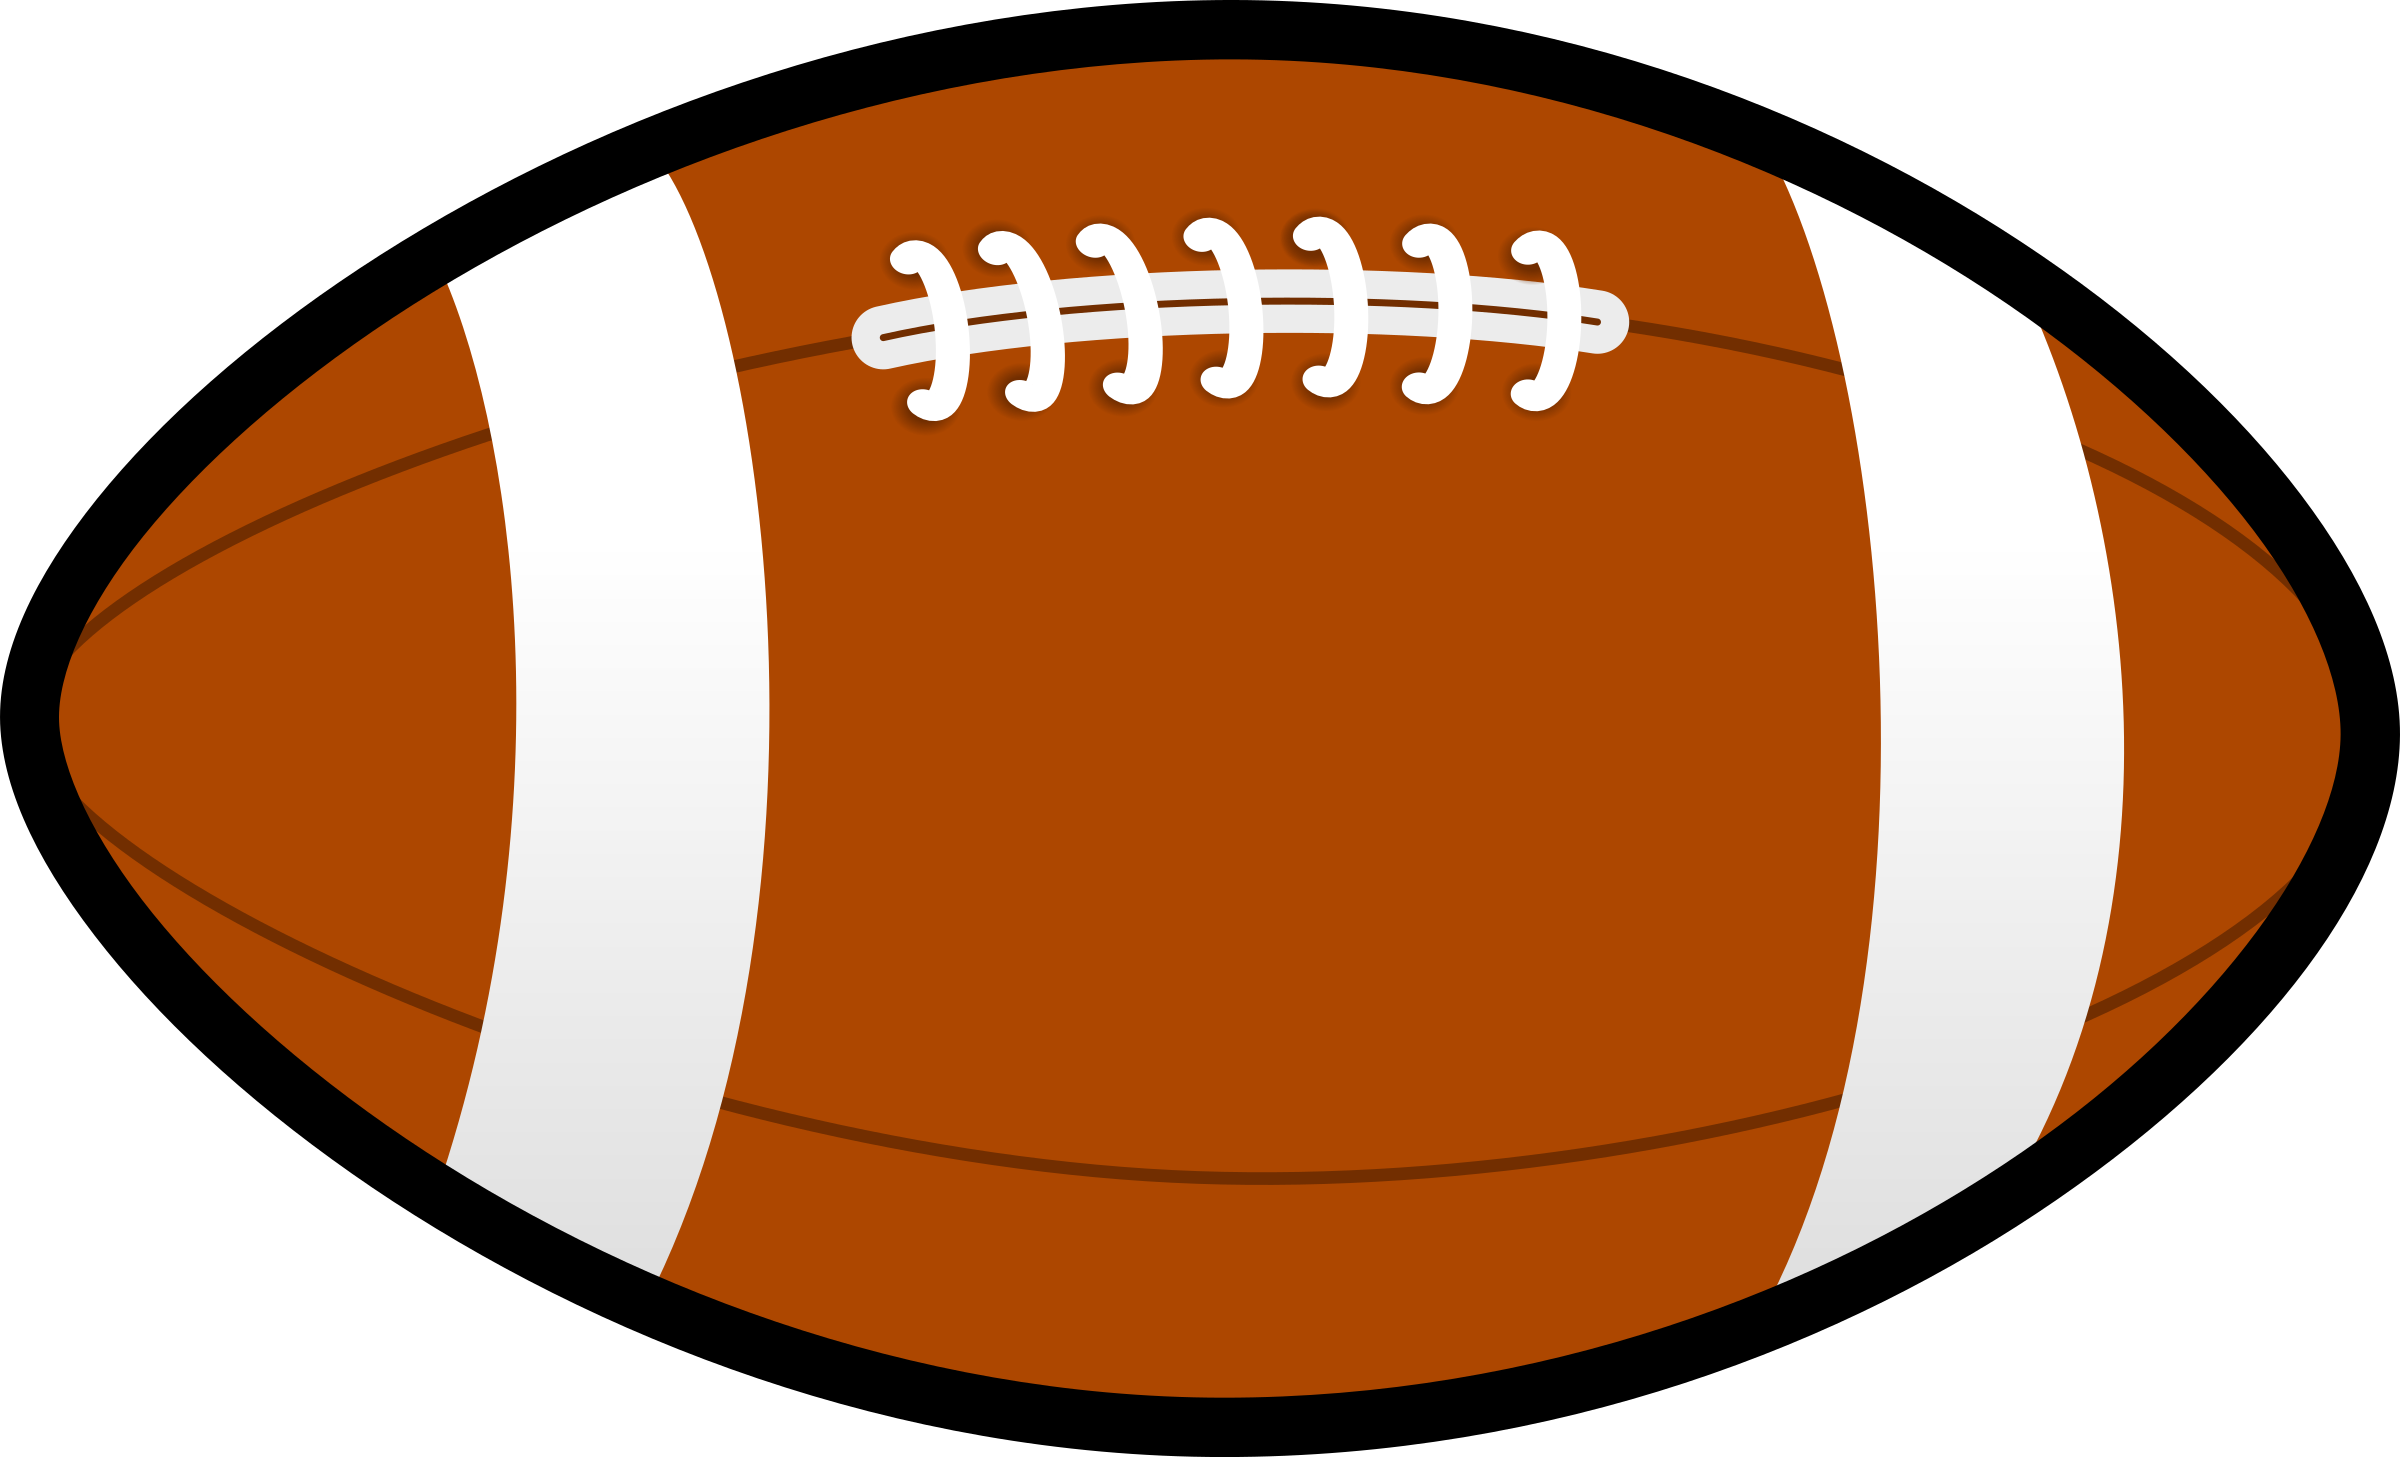 Ball clip different. Download rugby png image